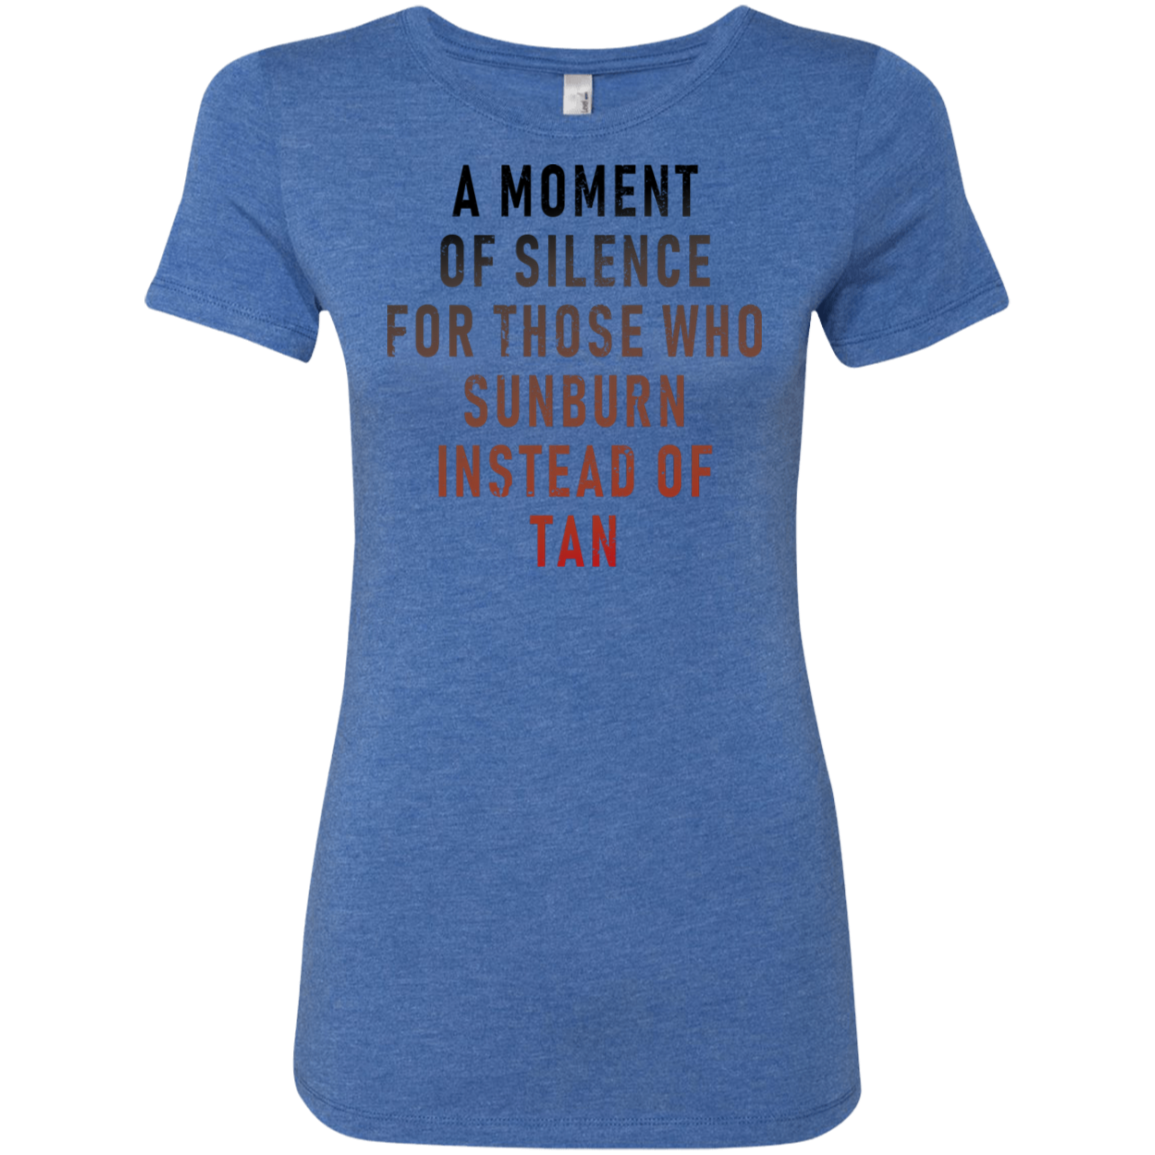 A Moment Of Silence For Those Who Sunburn Instead Of Tan Women's Classic Tee